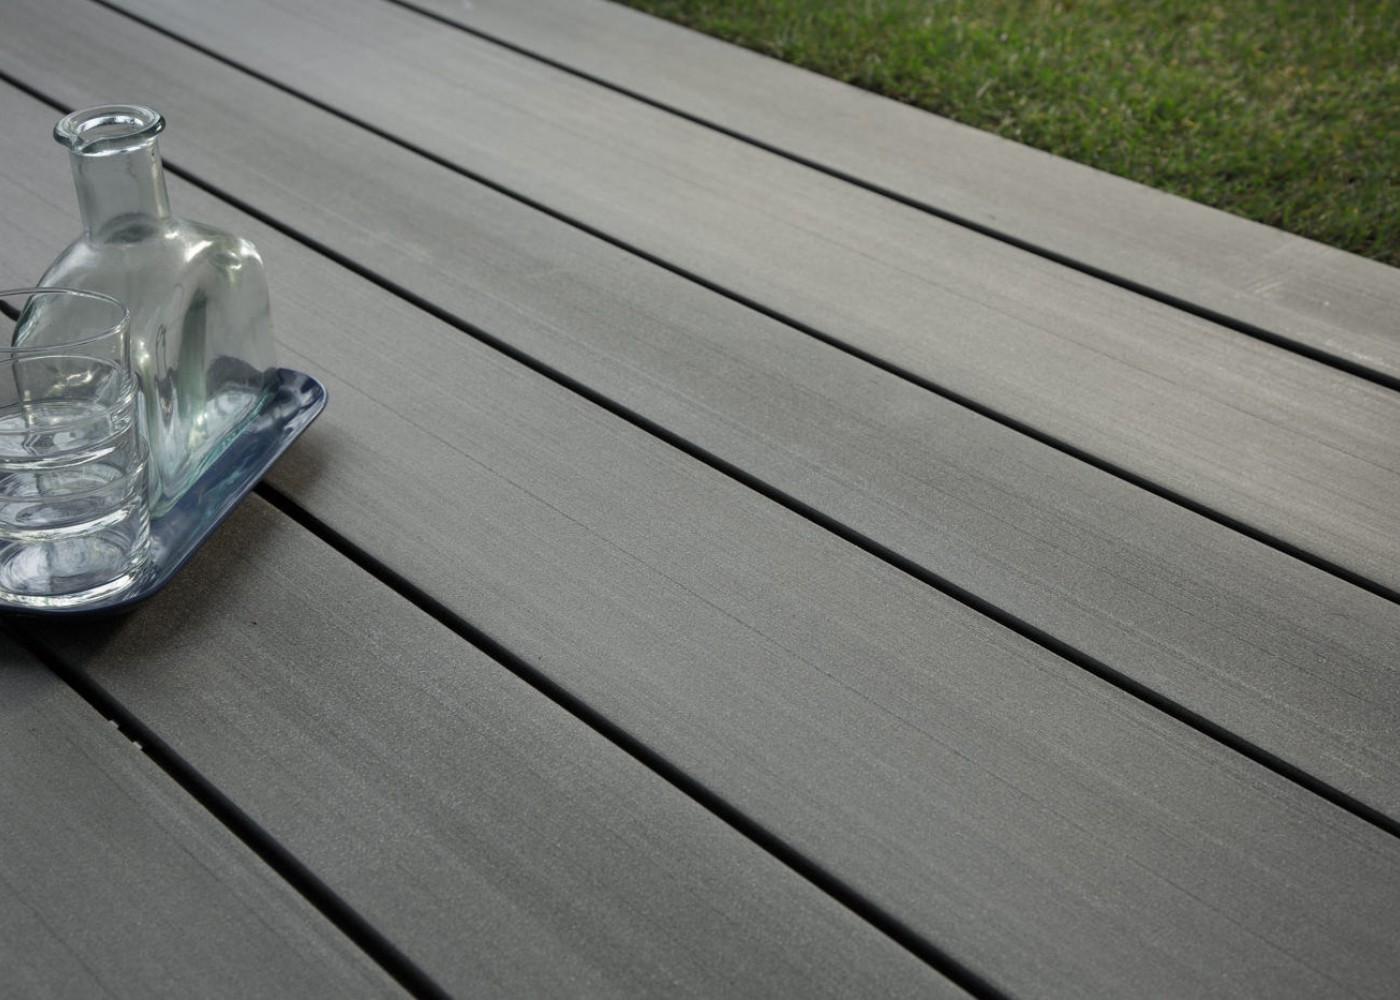 Lame Terrasse Bois Composite Teinte Gris Anthracite Lisse Fixation Invisible - 23/138/4000 23x138x4000